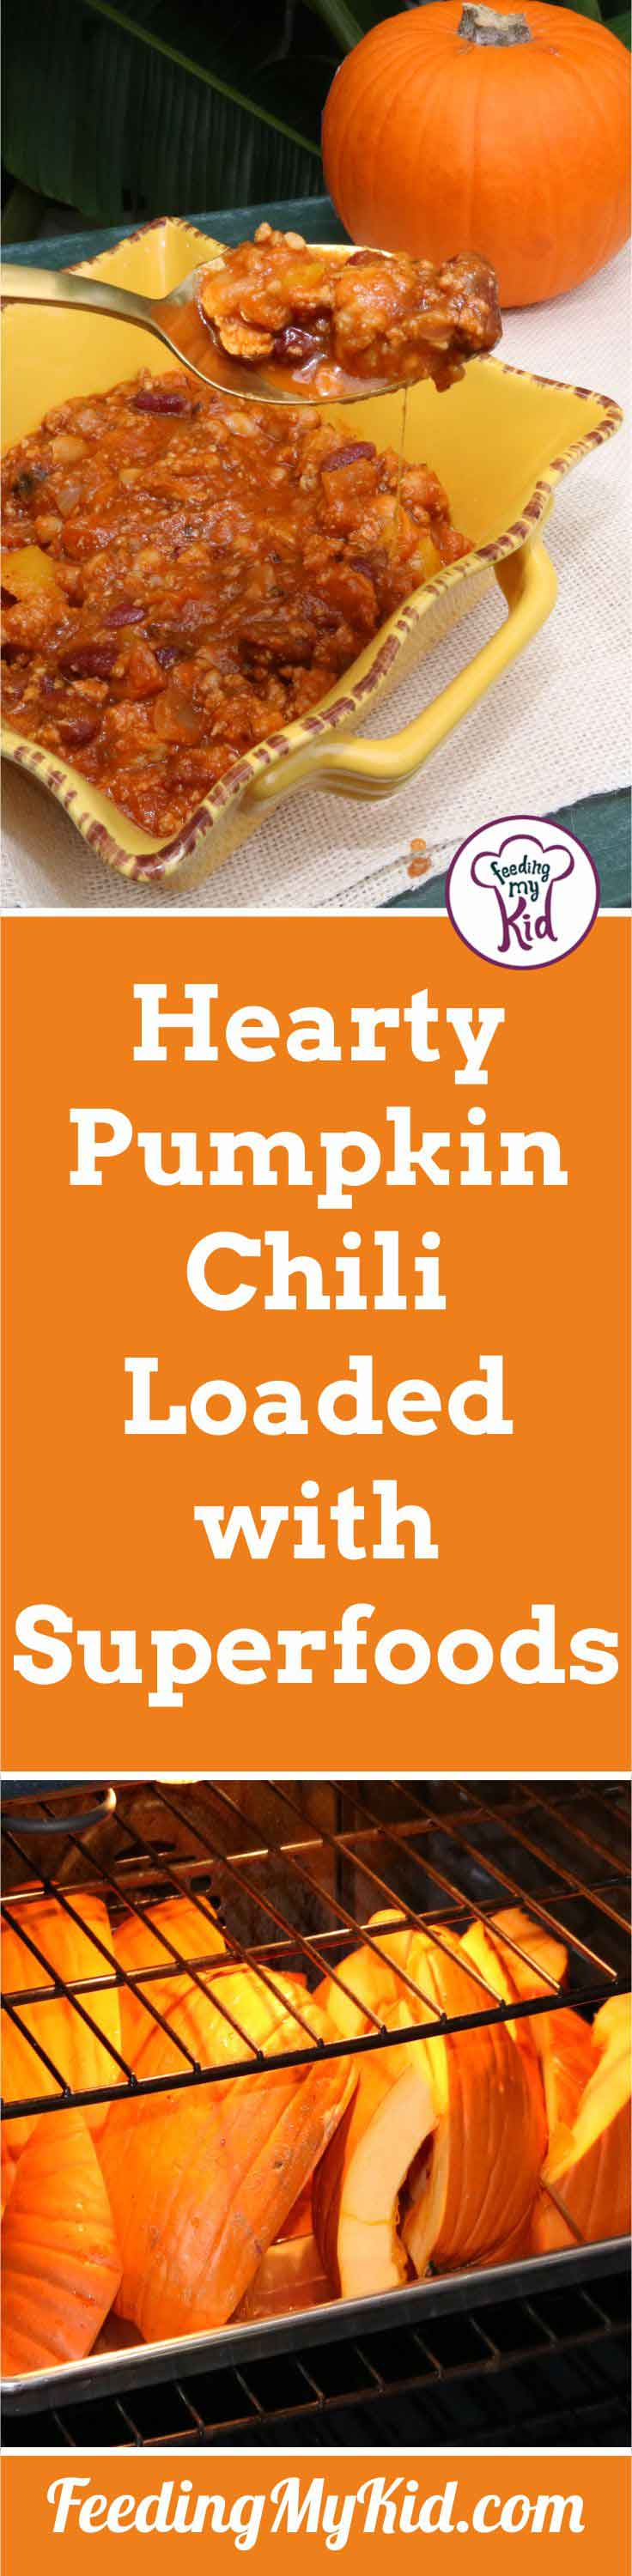 This pumpkin chili is filled with all the flavors of Fall! Using turkey and superfoods, this chili is as healthy as it is delicious. You have to try it!